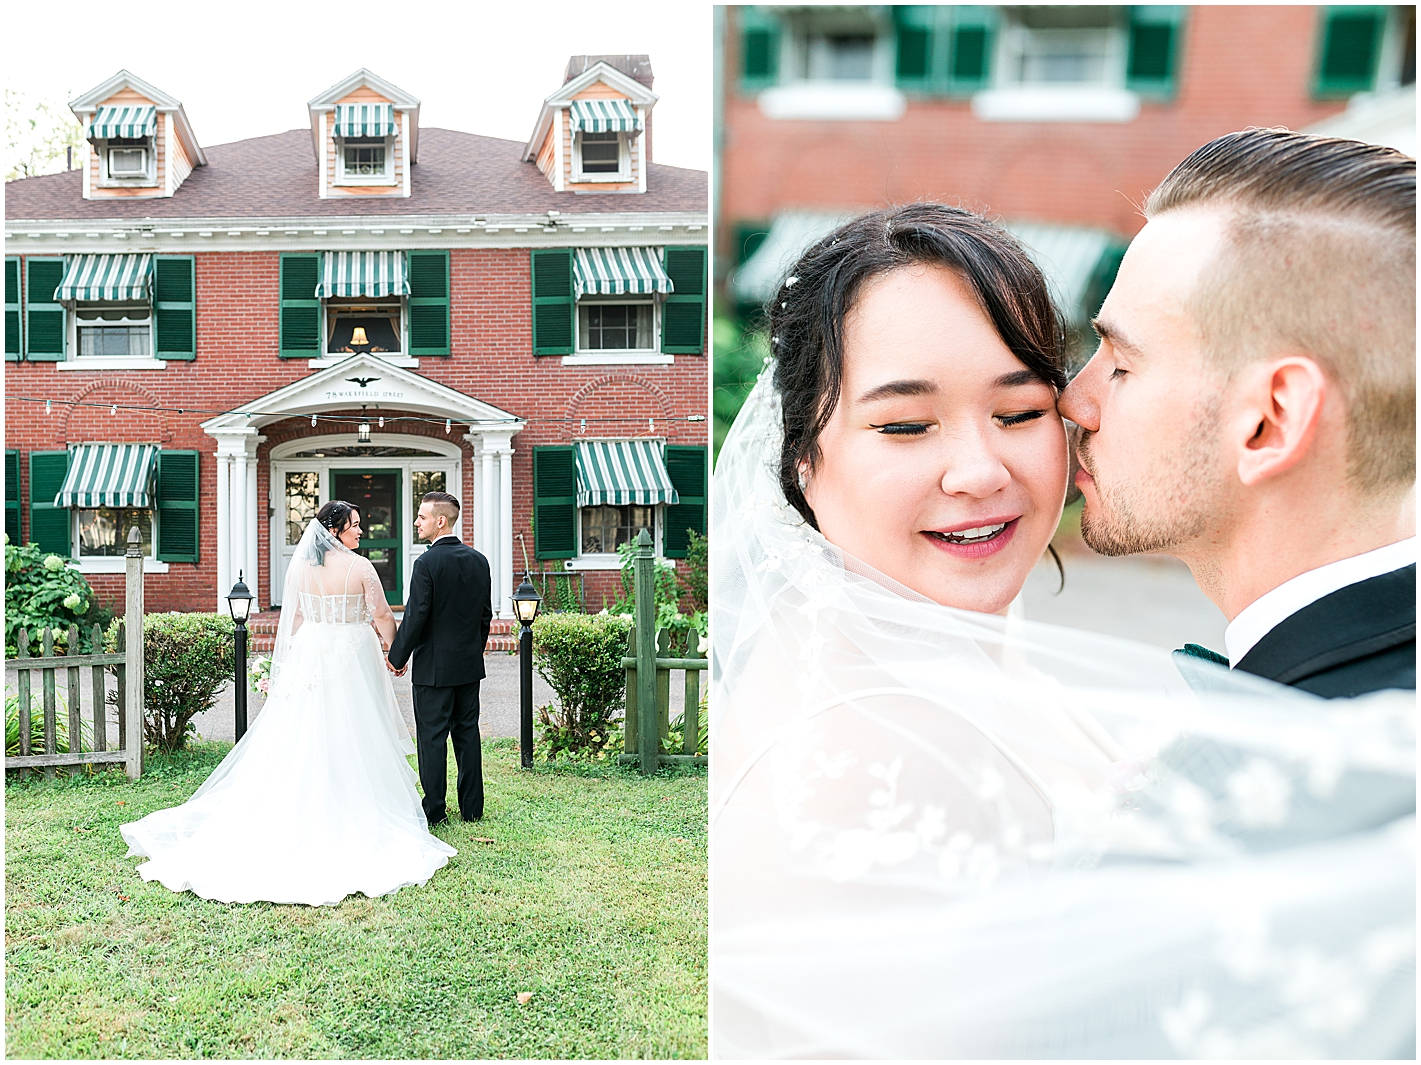 Wedding at Governors Inn Photos by Alyssa Parker Photography